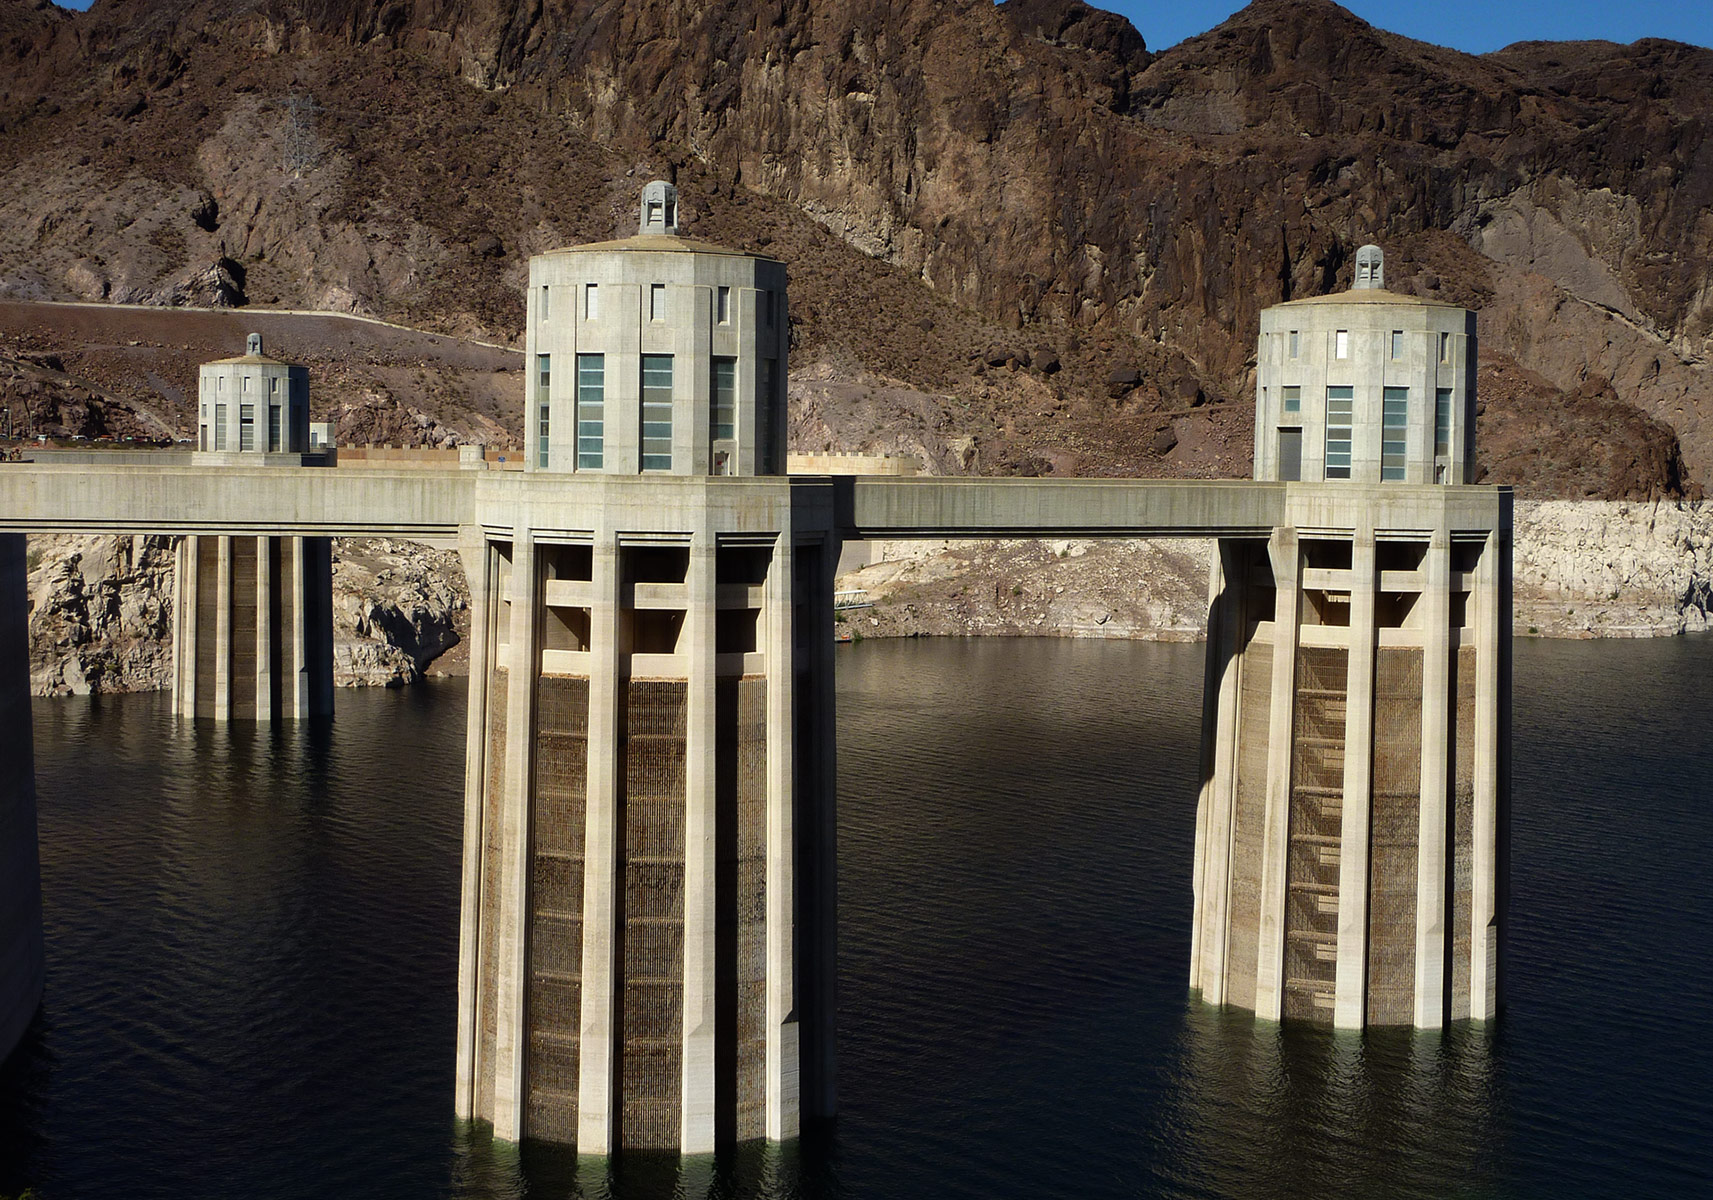 Hoover Dam intake towers, Arizona